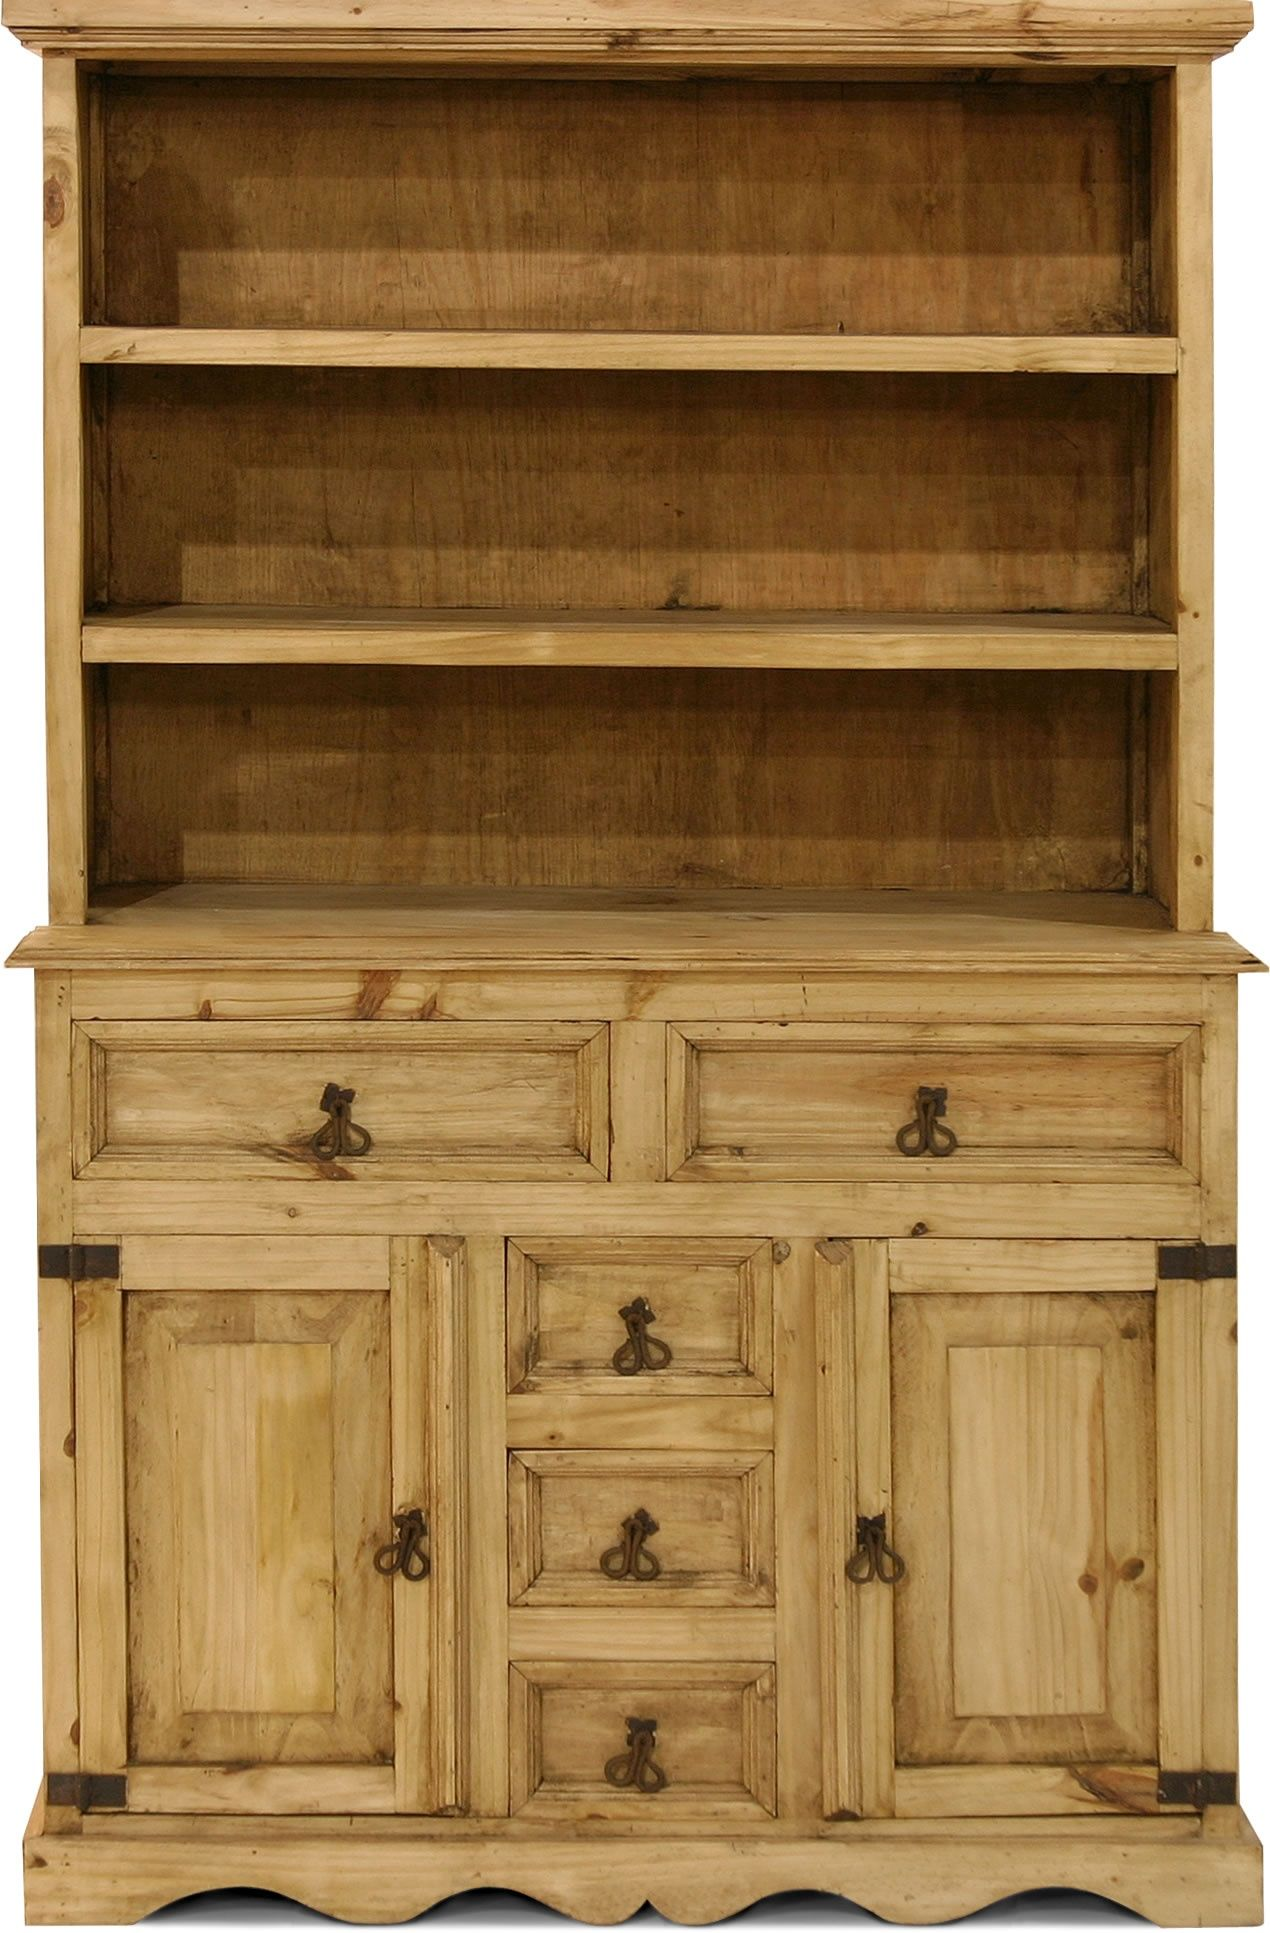 rustic look furniture. Picture Of Gonzalez Rustic Furniture Look Western Pine China Hutch With Storage Drawers And Cabinets - Indian (gnz-VIT10) (Country Cabinets) E